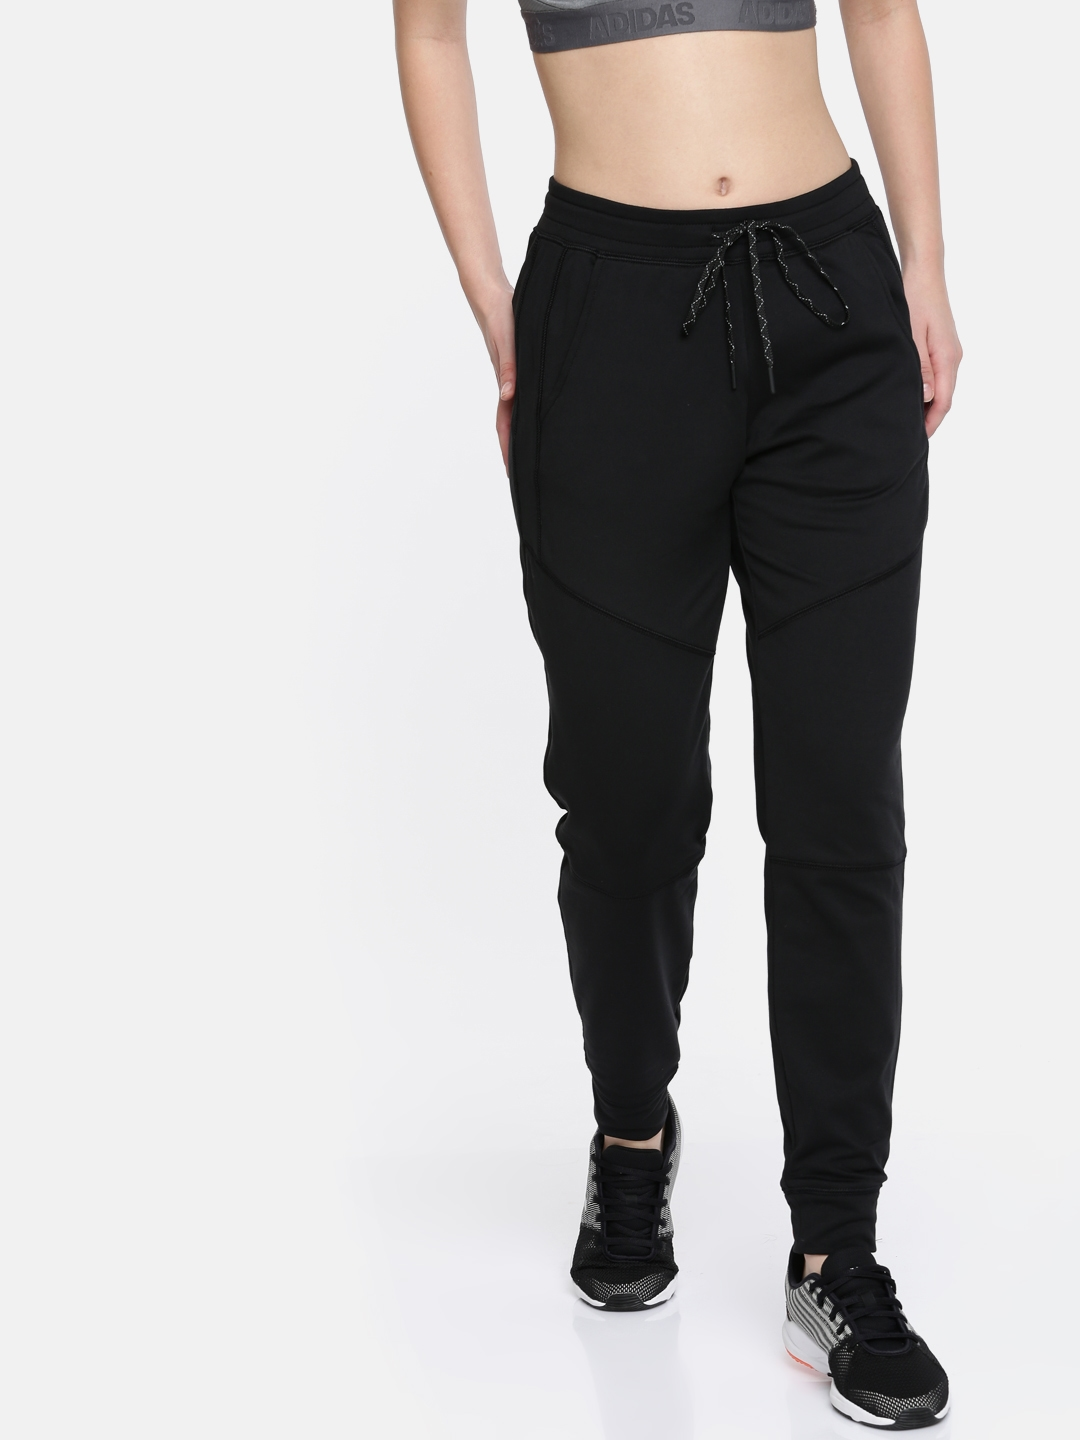 Buy AMERICAN EAGLE OUTFITTERS Women Black Solid Joggers - Track ... f7bfc55737d5